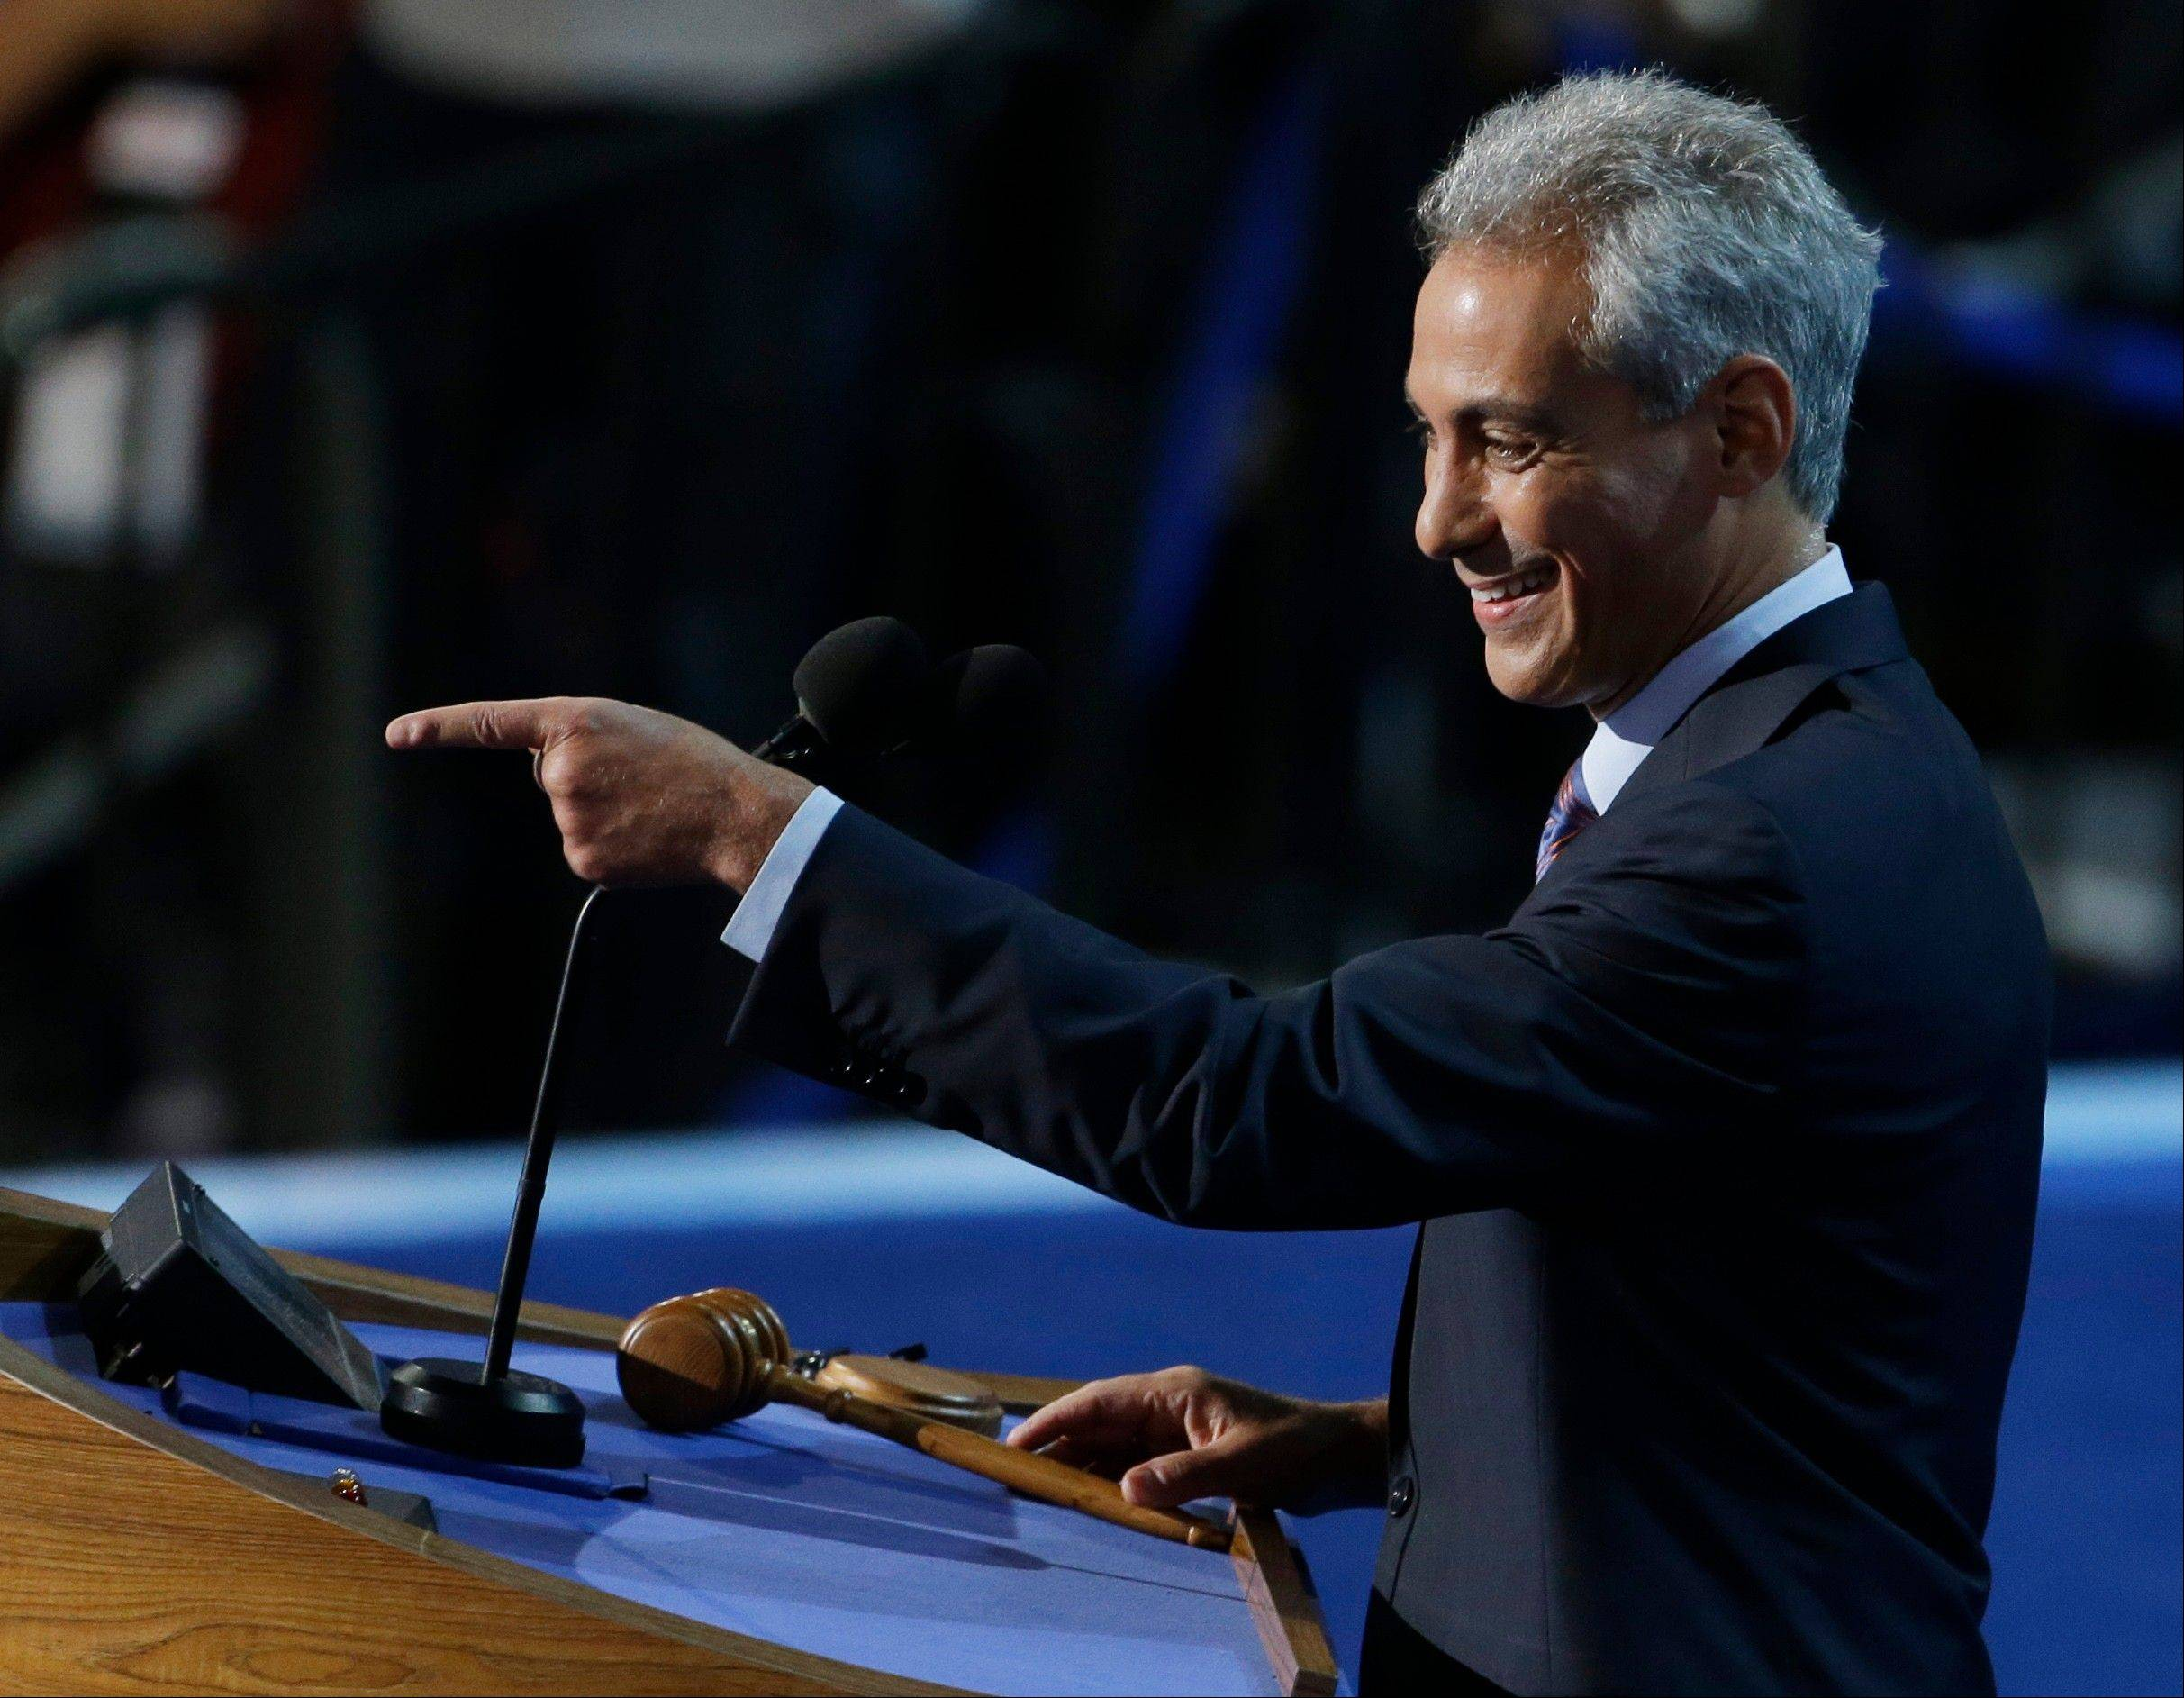 Chicago Mayor Rahm Emanuel points to delegates at the Democratic National Convention in Charlotte, N.C., on Tuesday, Sept. 4, 2012.